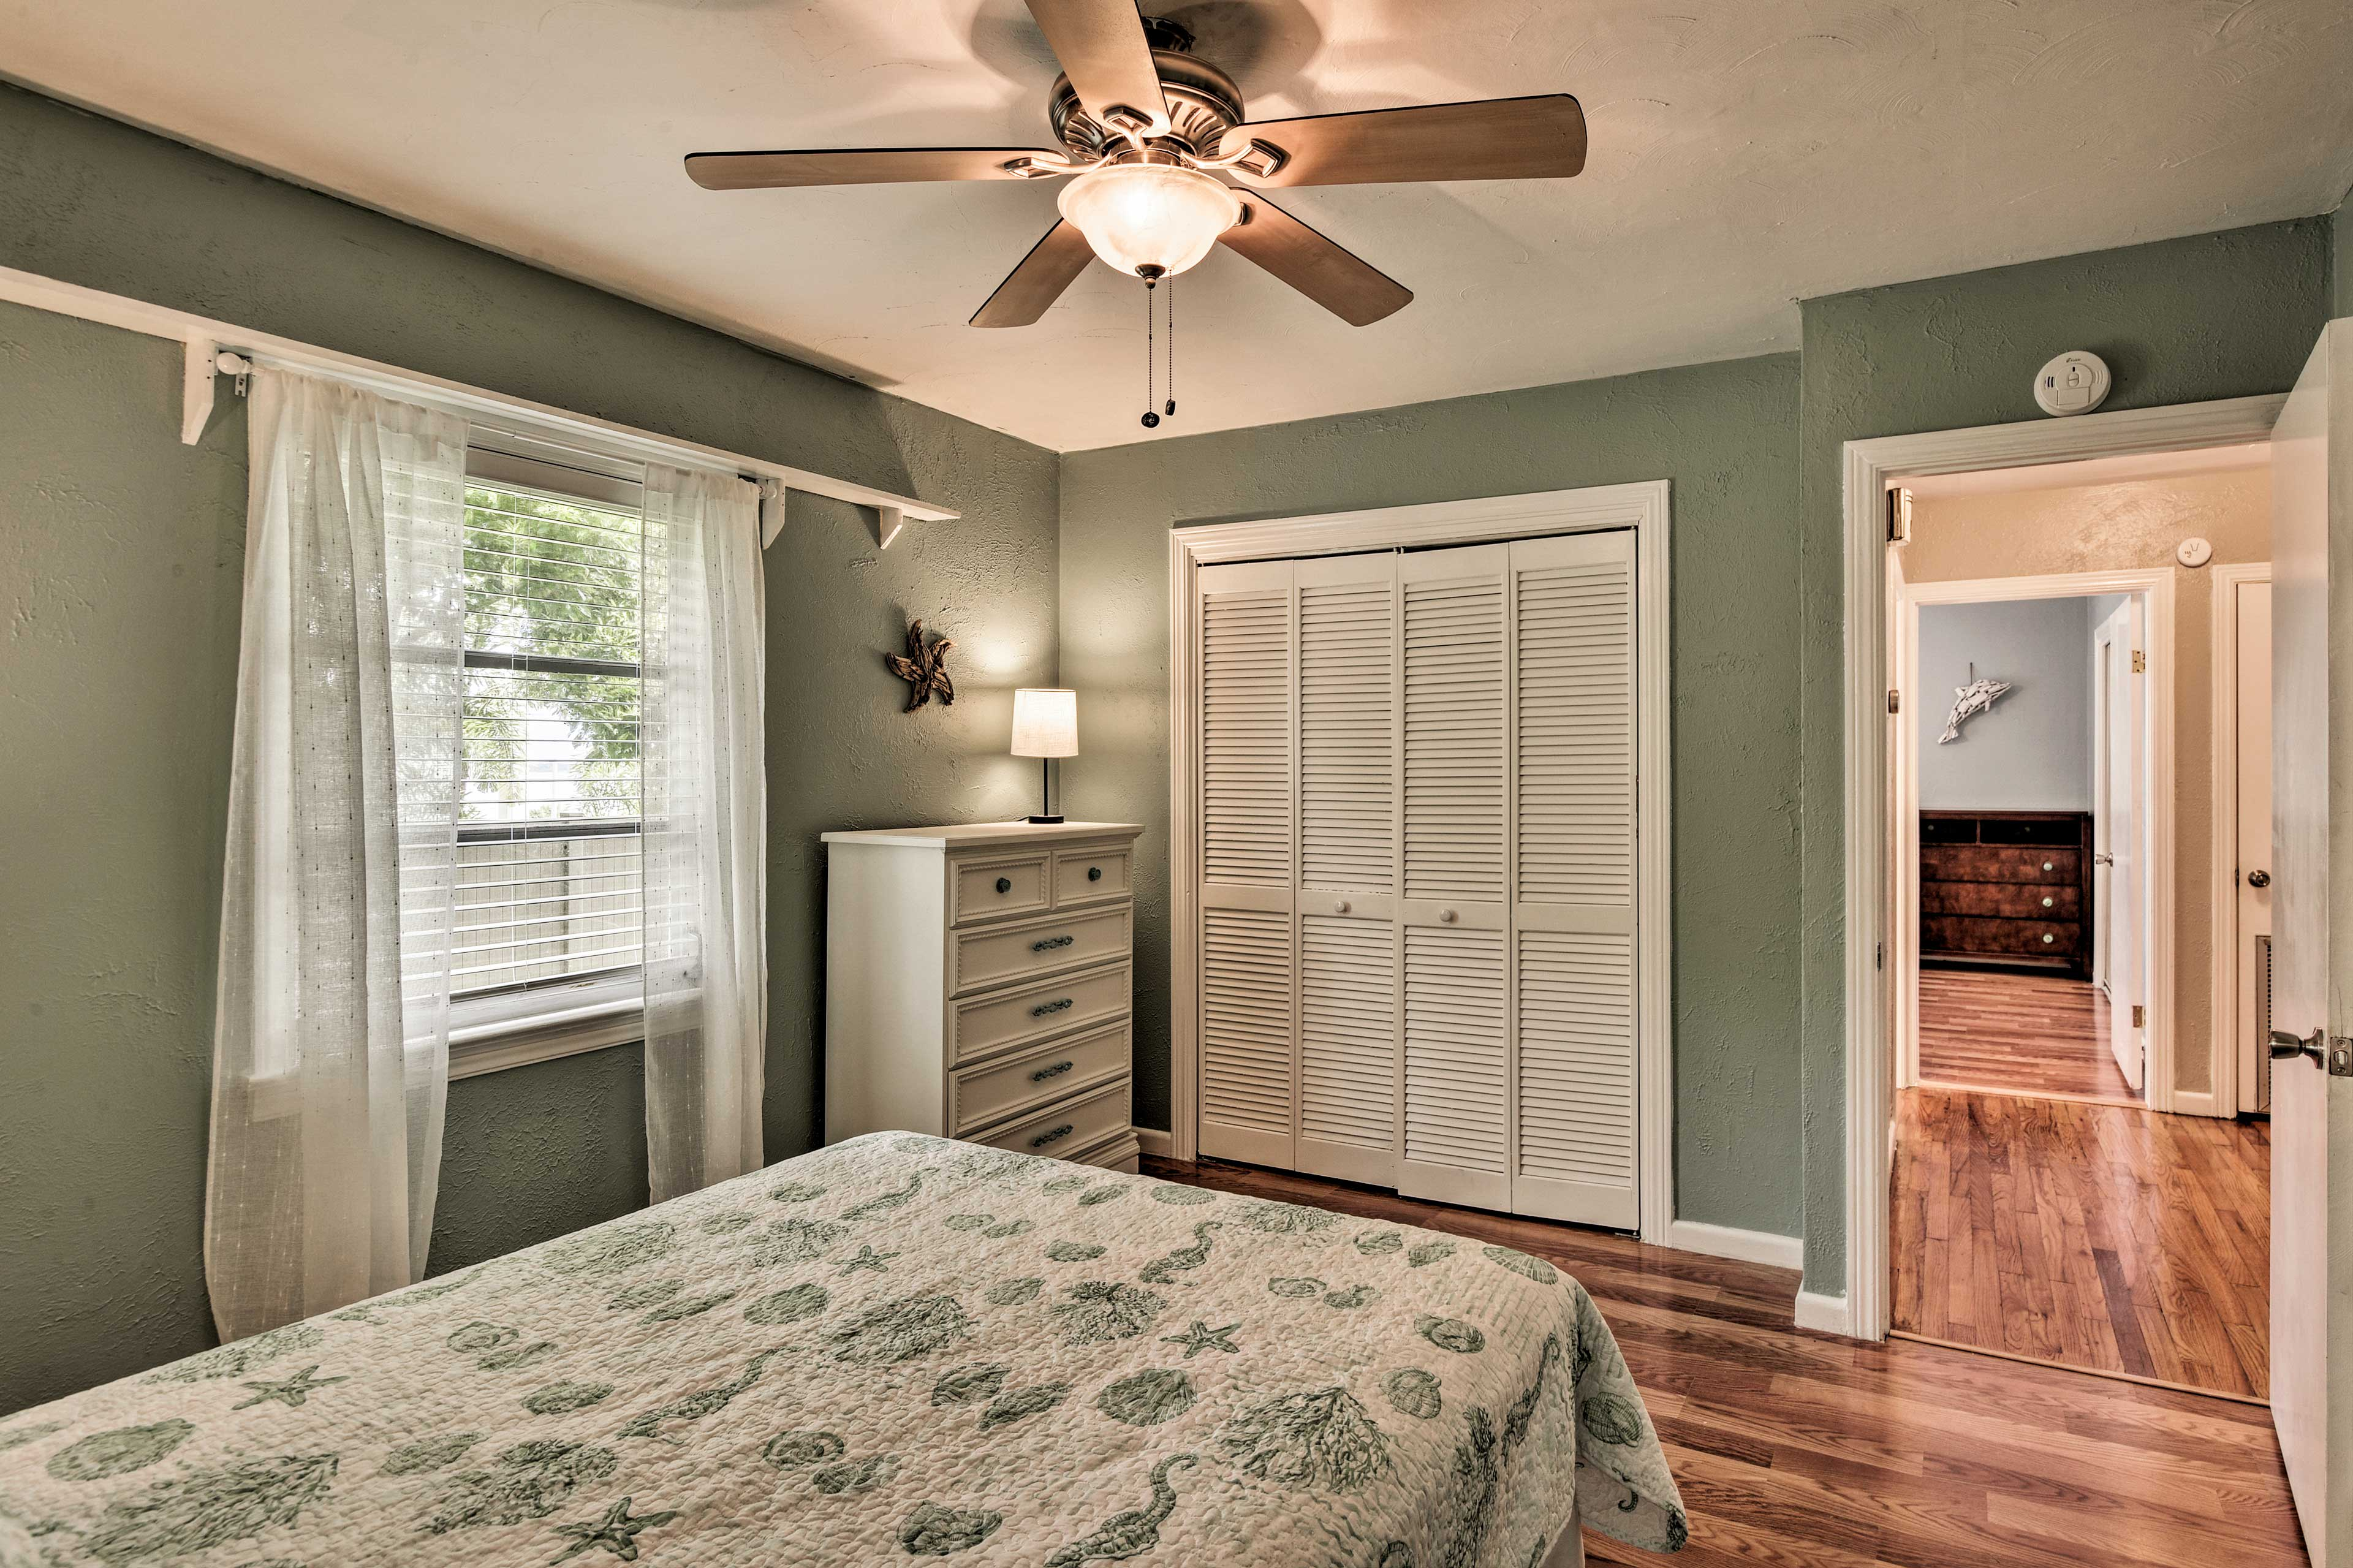 Hardwood floors flow continuously throughout the house.